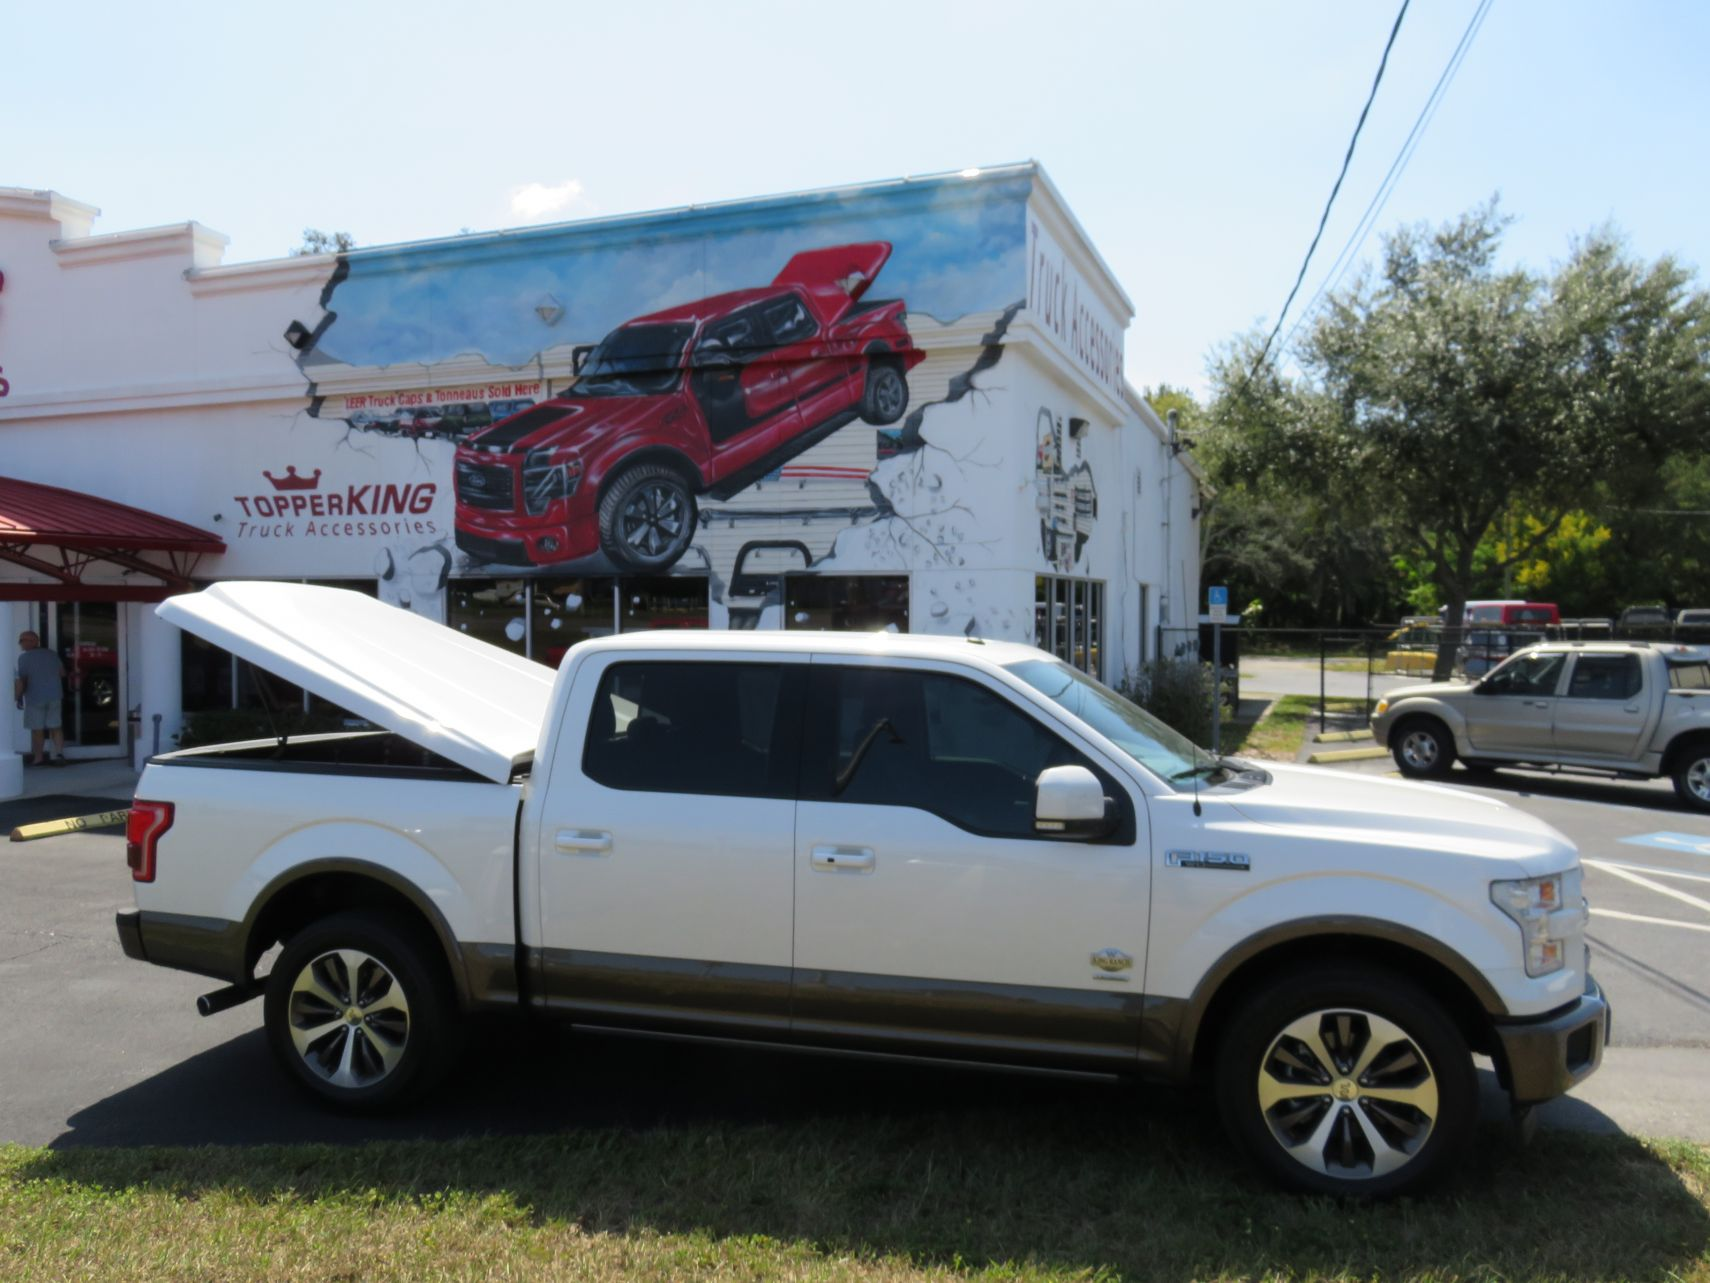 2019 F150 LEER 700, Hitch, and Tint by TopperKING in Brandon, FL 813-689-2449 or Clearwater, FL 727-530-9066. Call today to get started!